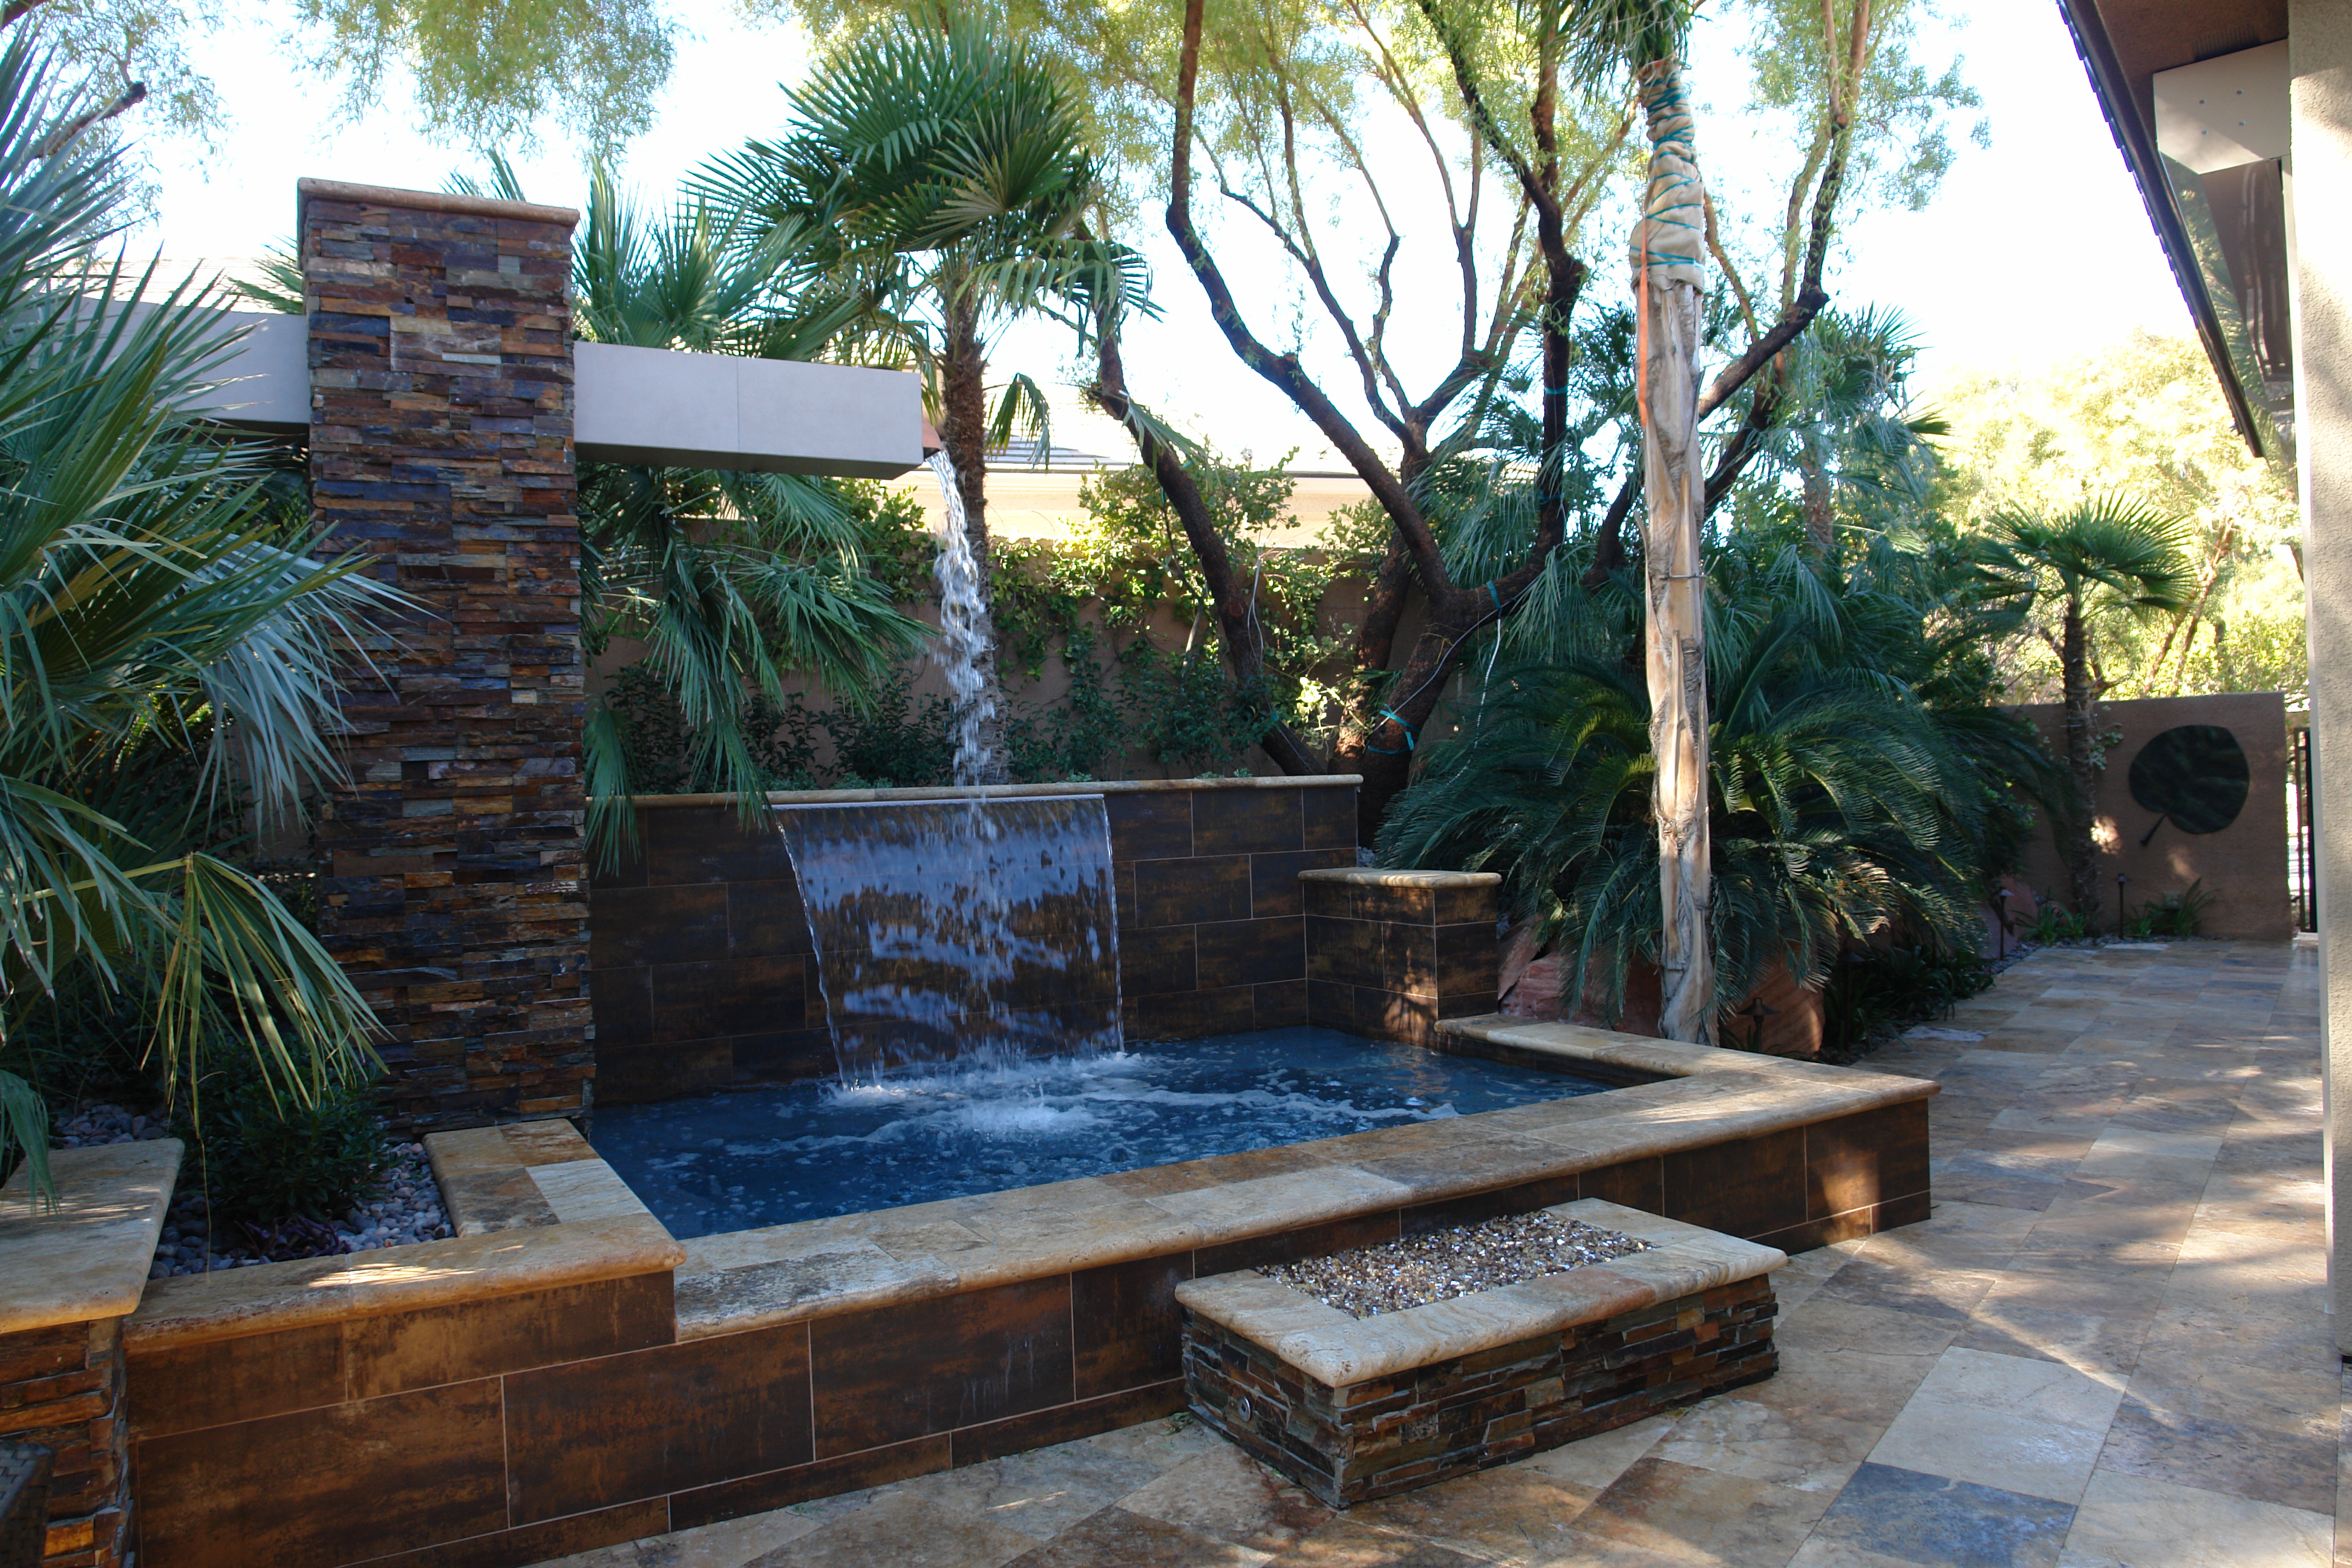 Custom Pools By Design lazy rivers pool custom pools with lazy river by price reliant pools Custom Pool Company Design By Damon Lang Green Planet Landscaping And Pools Inc